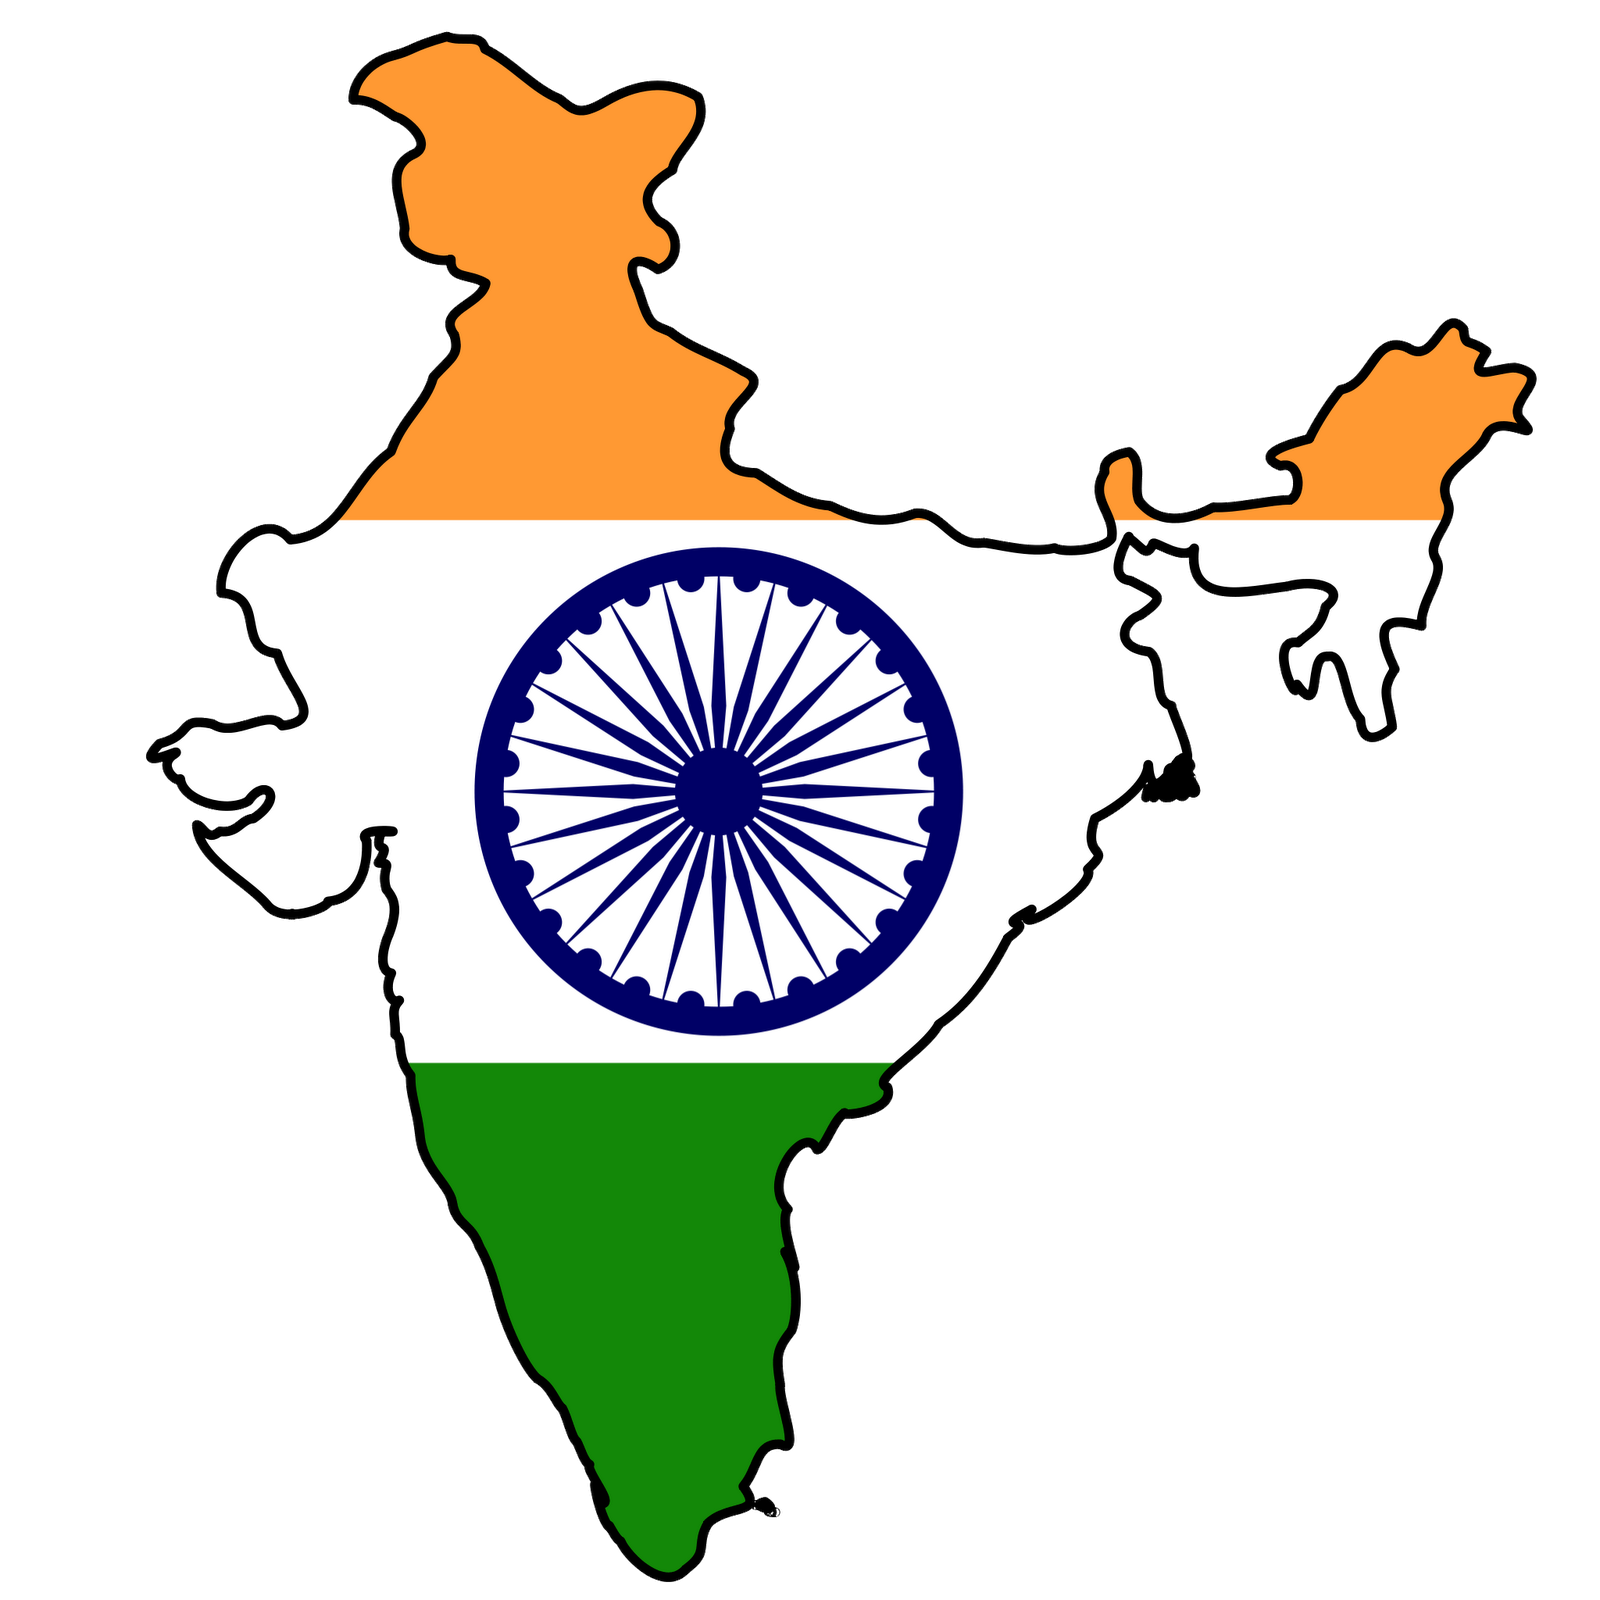 India clipart #7, Download drawings